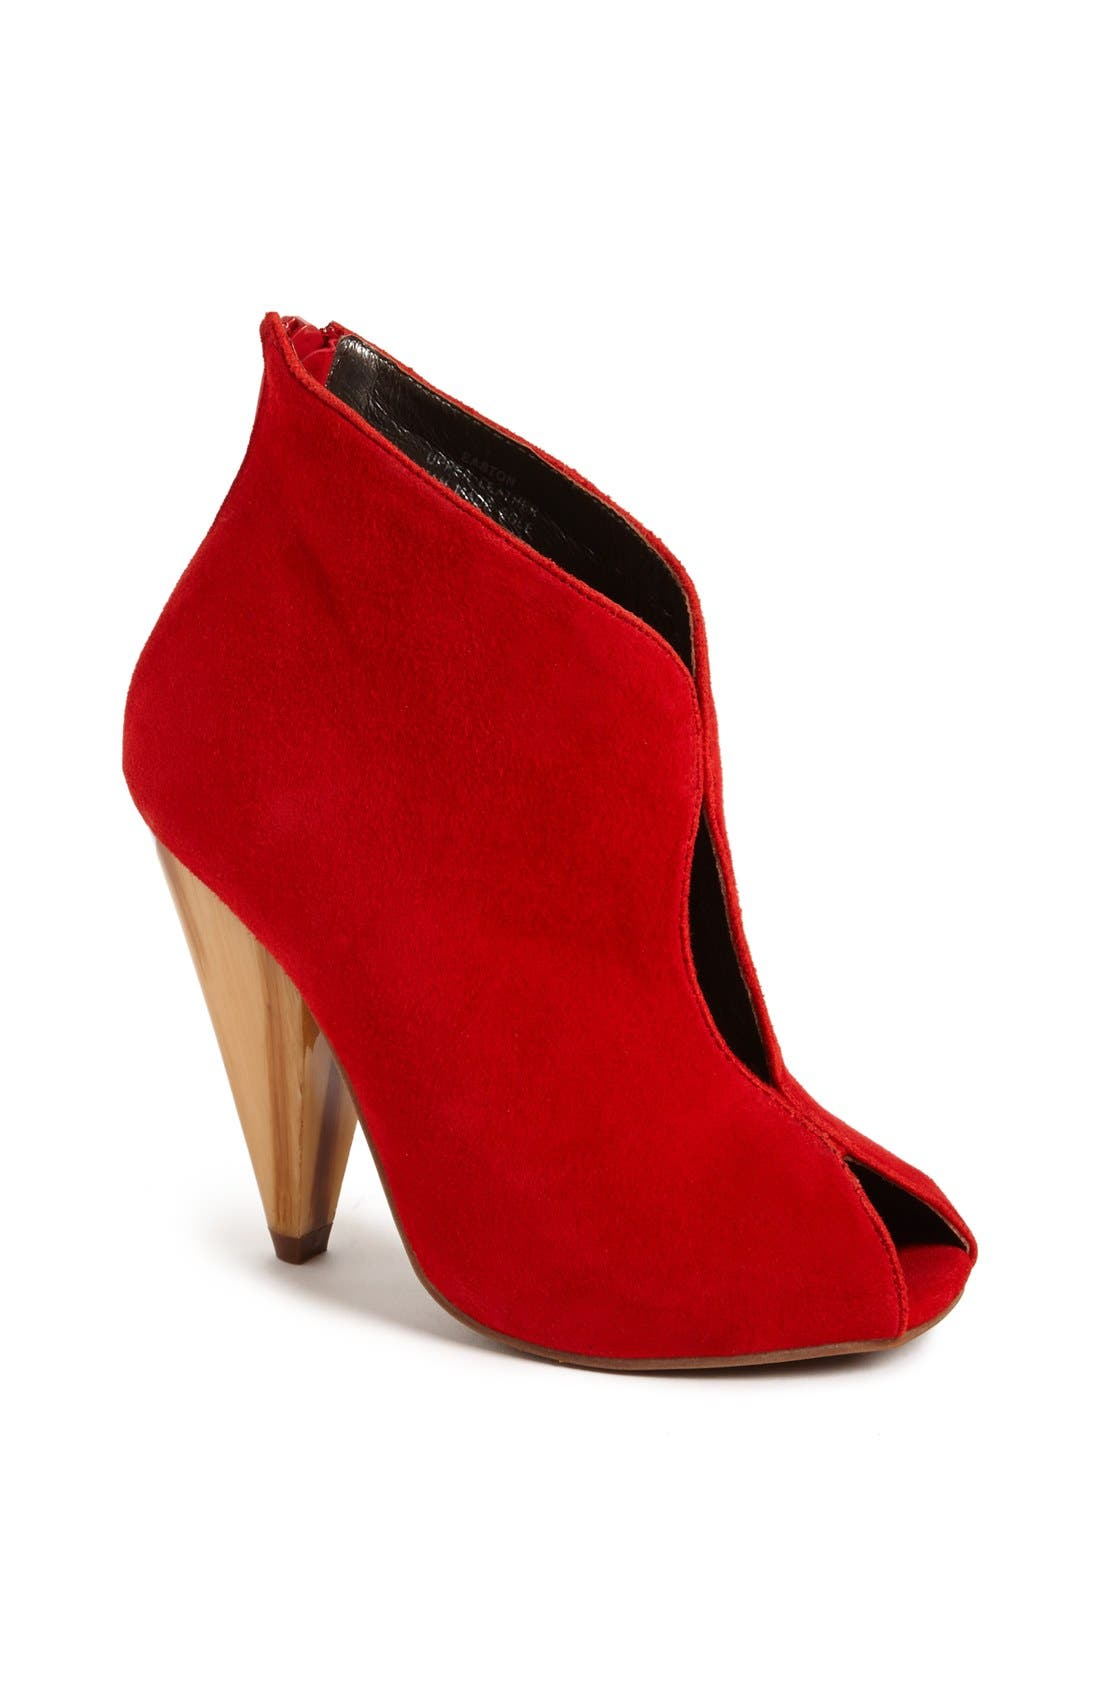 Main Image - Jeffrey Campbell 'Easton' Suede Bootie